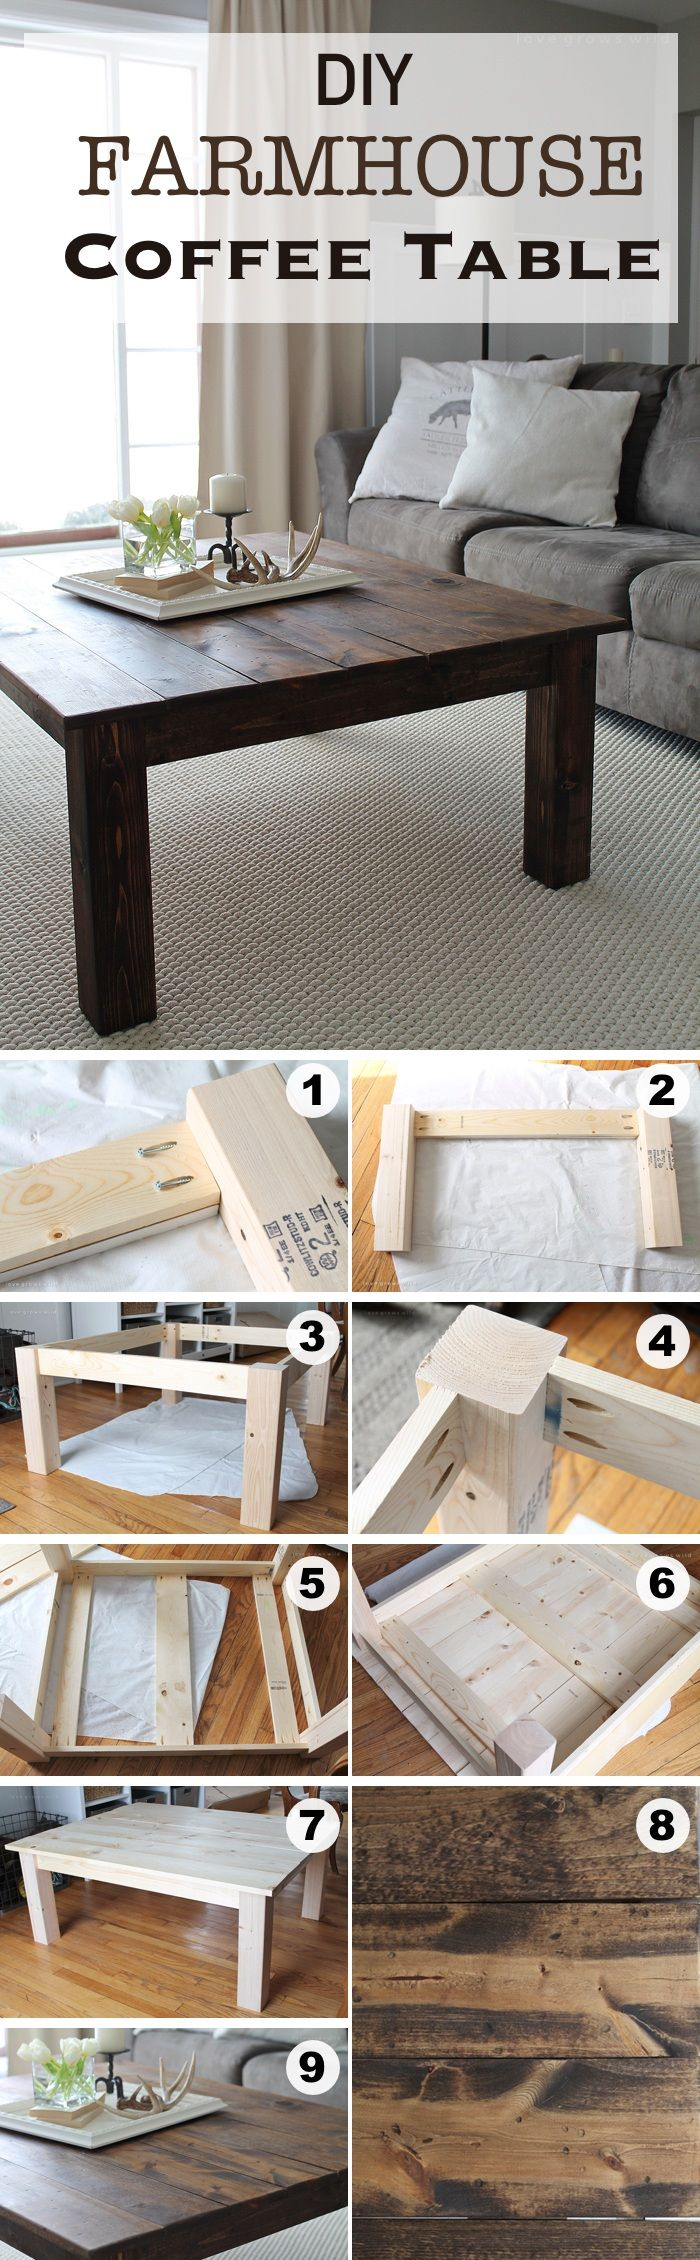 15 Creative Diy Coffee Table Ideas You Can Build Yourself Diy